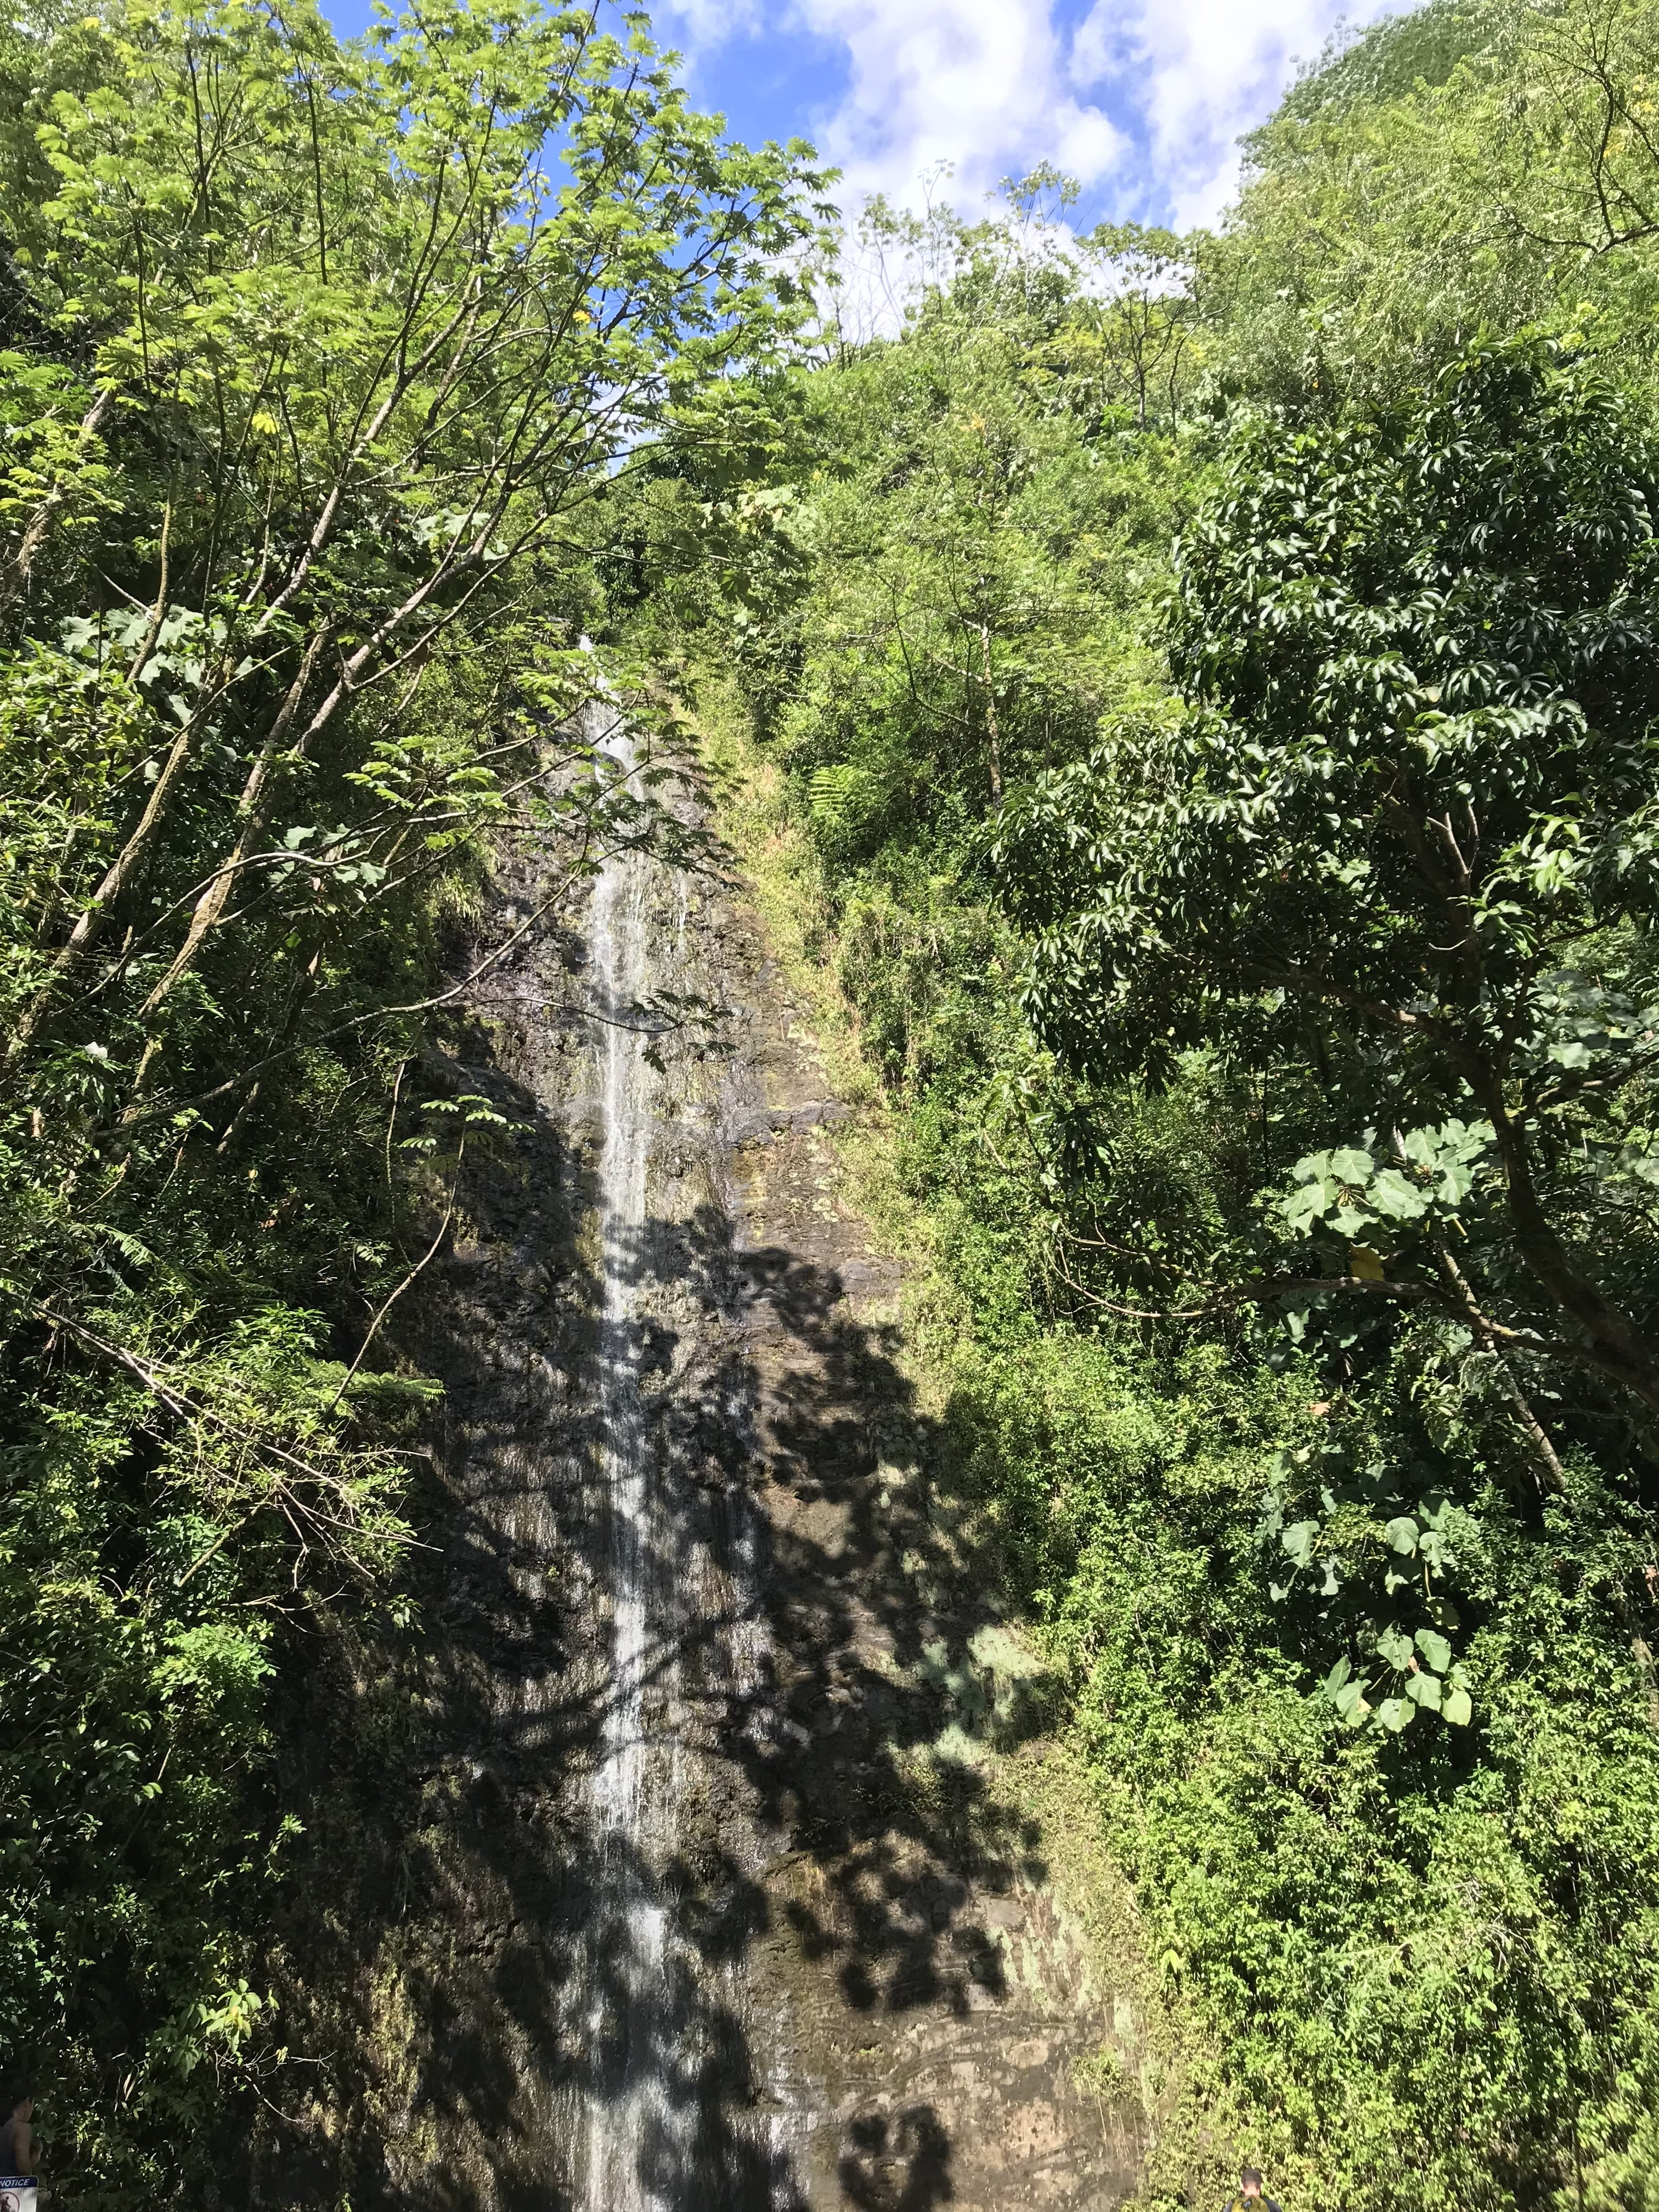 Hiking In Hawaii: Manoa Falls - Manoa Falls Hike - Is Manoa Falls Easy - Manoa Falls Kid Friendly - Manoa Falls Oahu - Manoa Falls Hours - Manoa Falls Trail Oahu - Manoa Falls Hike - Oahu Hikes - Best Oahu Hikes - Short Oahu Hikes - Easy Hawaii Hikes - #oahu #manoafalls #hawaii #hiking